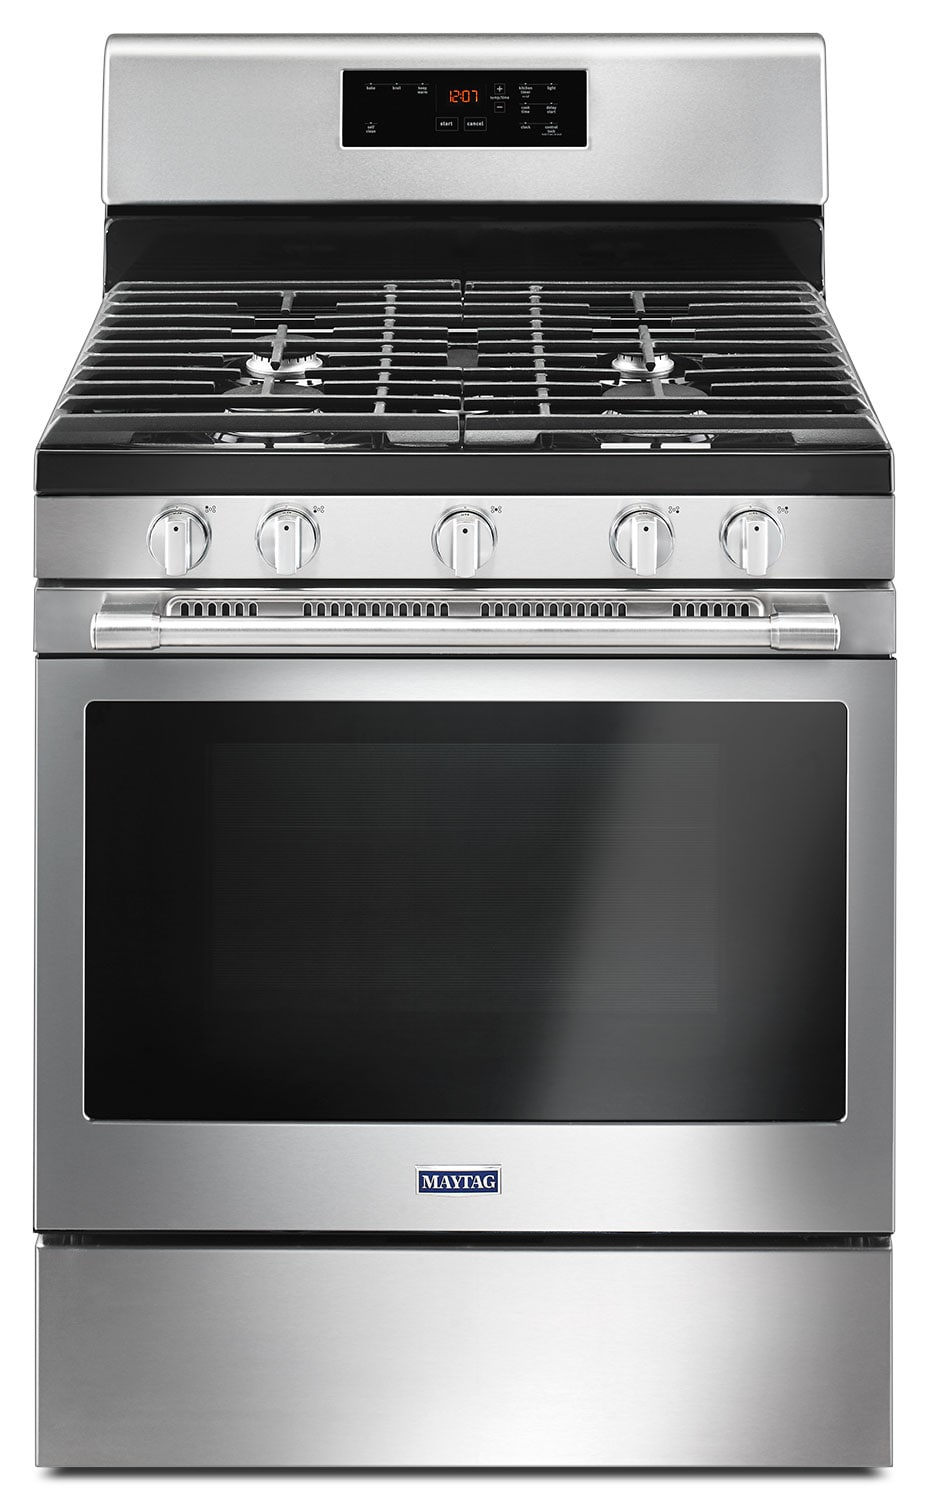 Maytag 5.0 Cu. Ft. Freestanding Gas Range with Oval Burner – MGR6600FZ